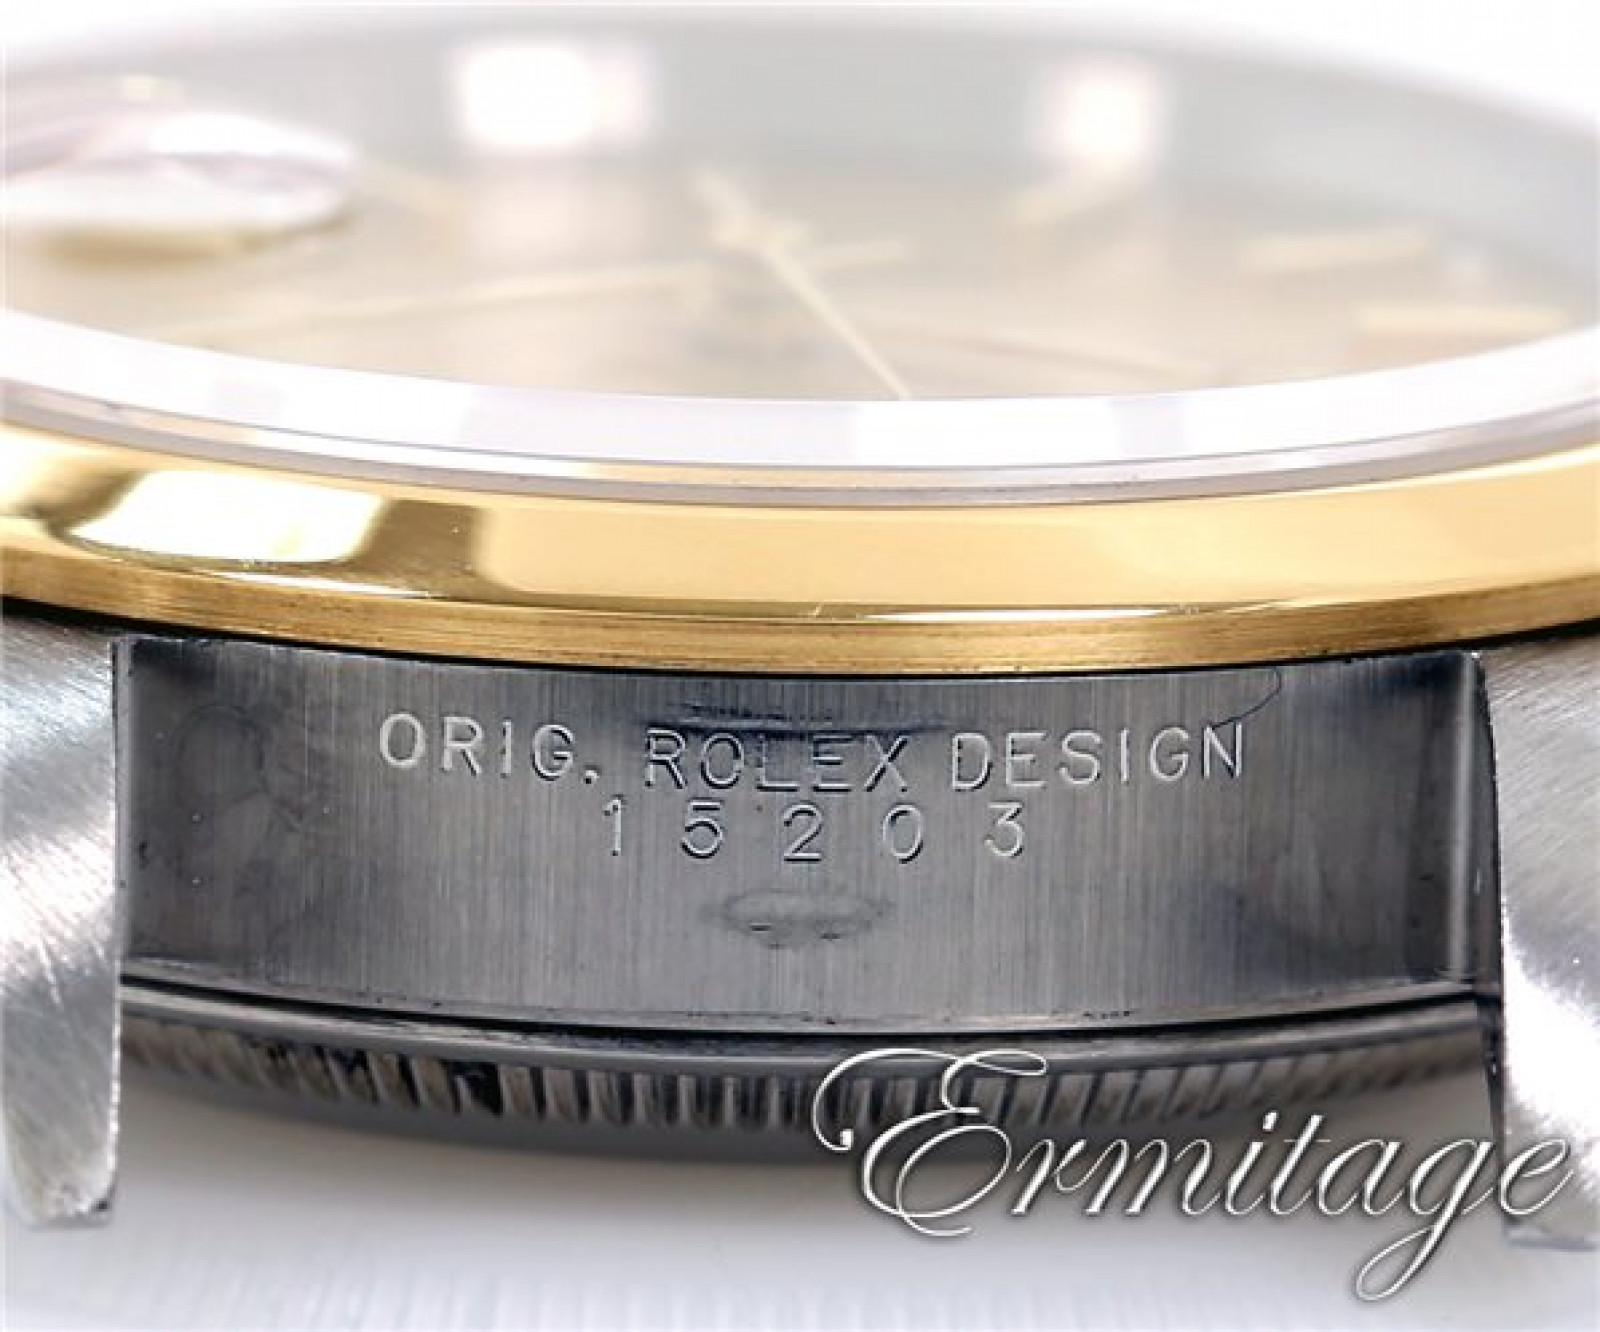 Rolex Oyster Perpetual Date 15203 Gold & Steel